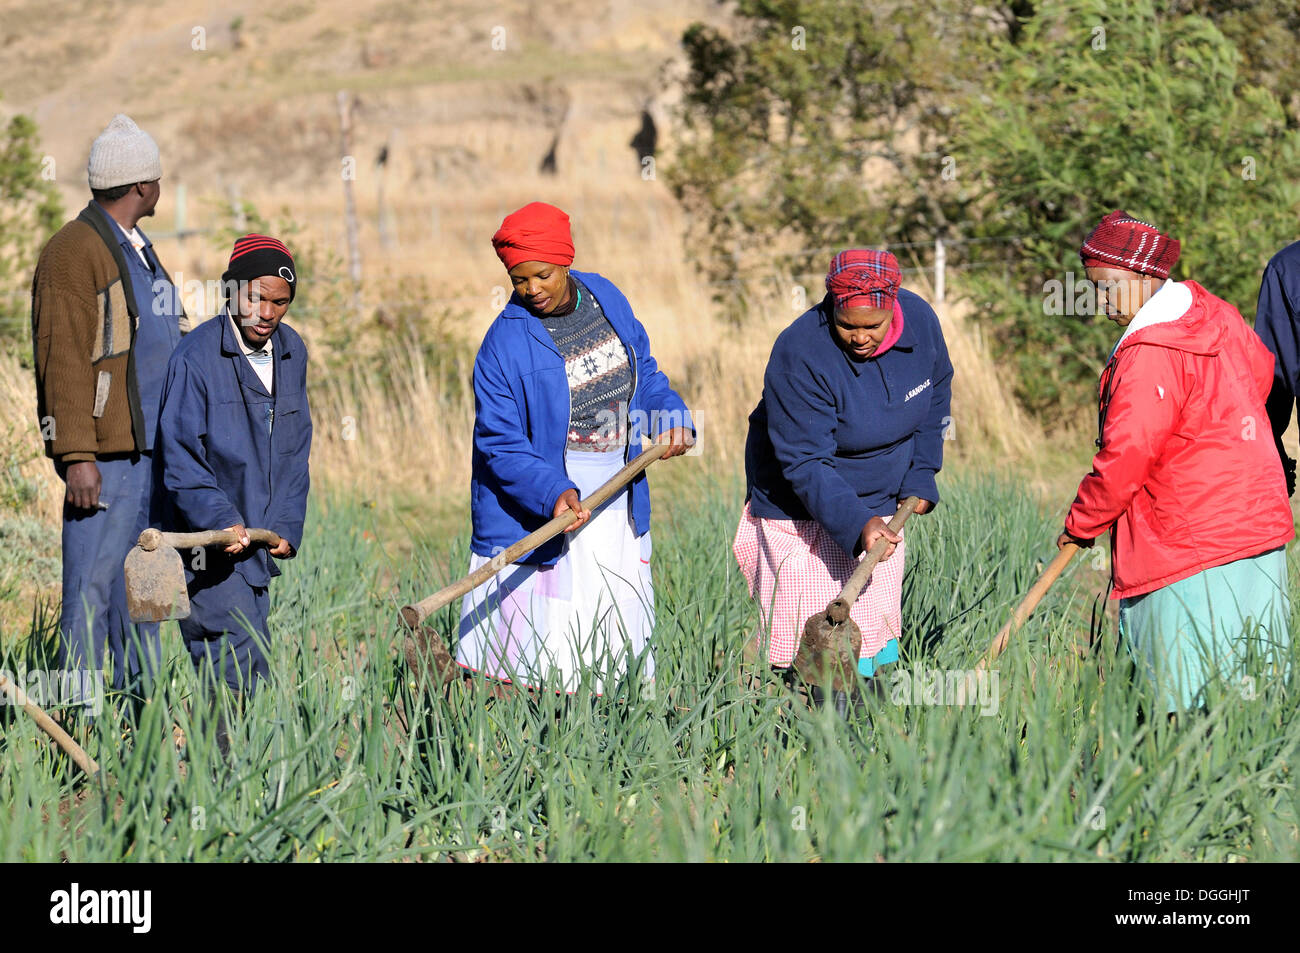 Women and men working in the fields, irrigated fields, Cata-Village in the former Homeland Ciskei, Eastern Cape, South Africa - Stock Image